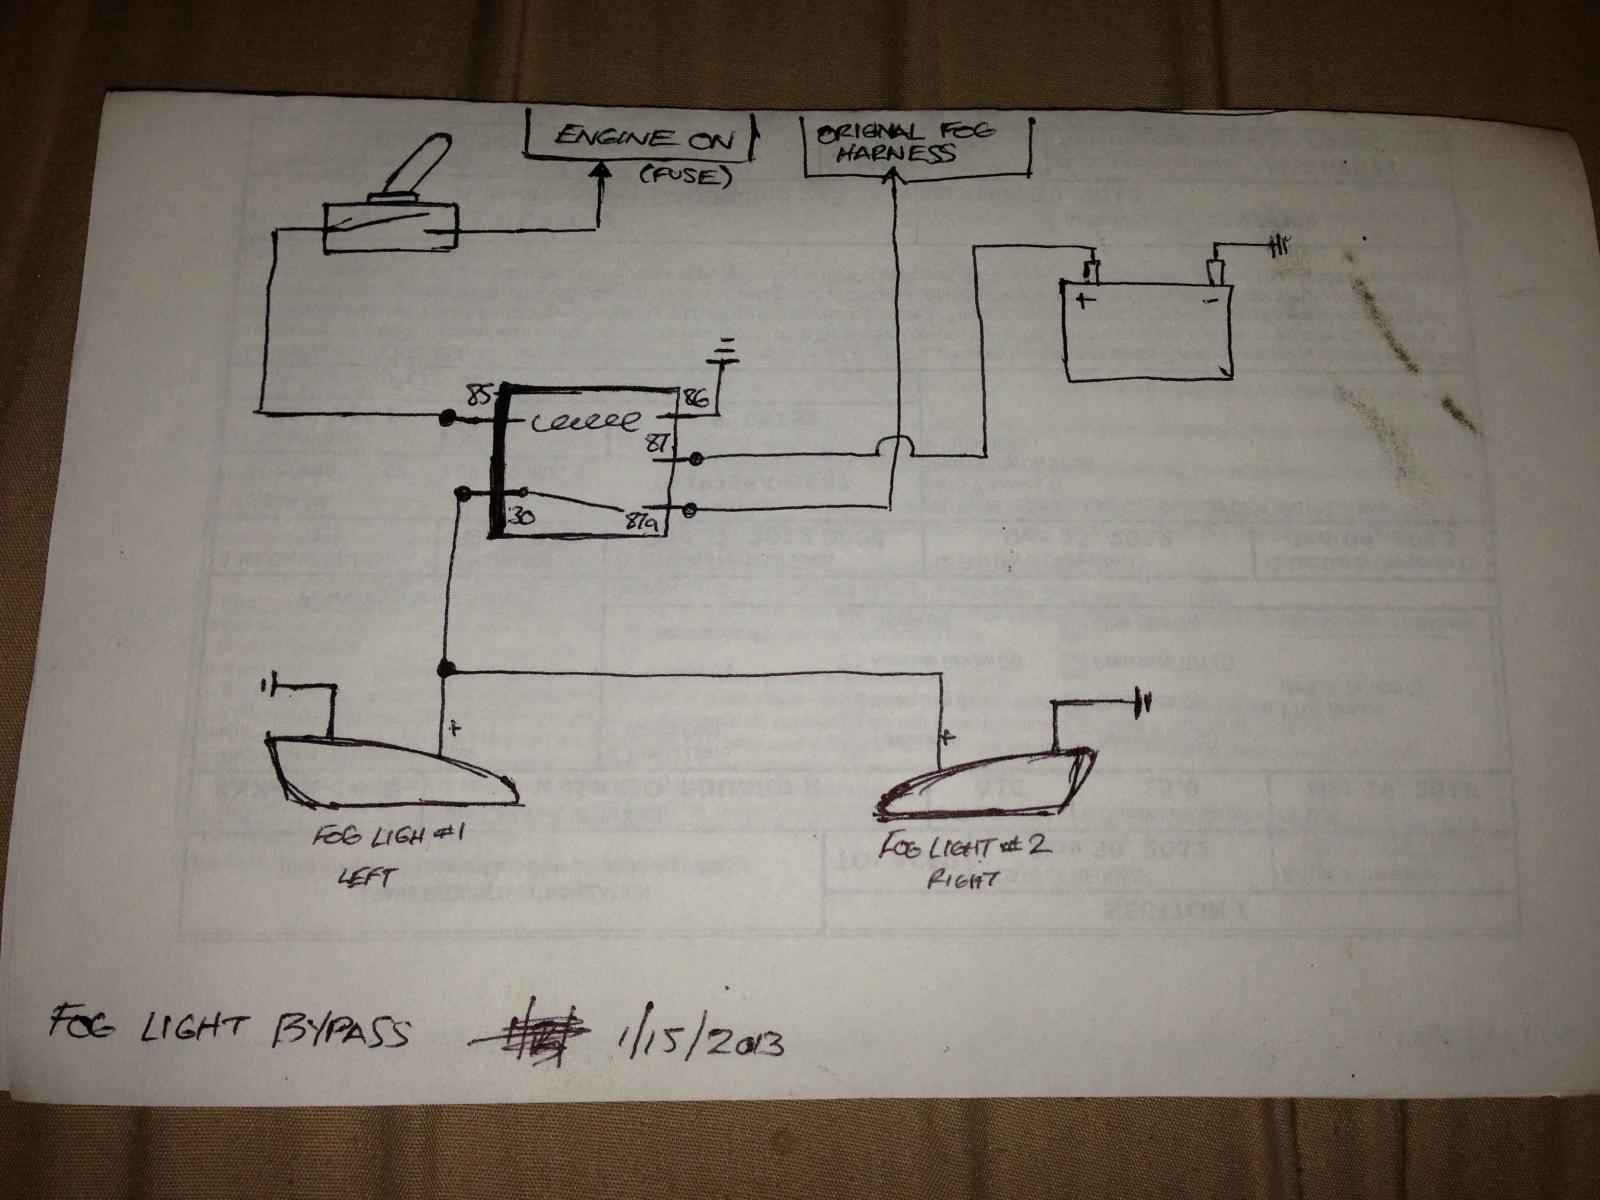 Simple Wiring Diagram To Bypass Foglights  Works W  O Headlights Or W   Highbeams